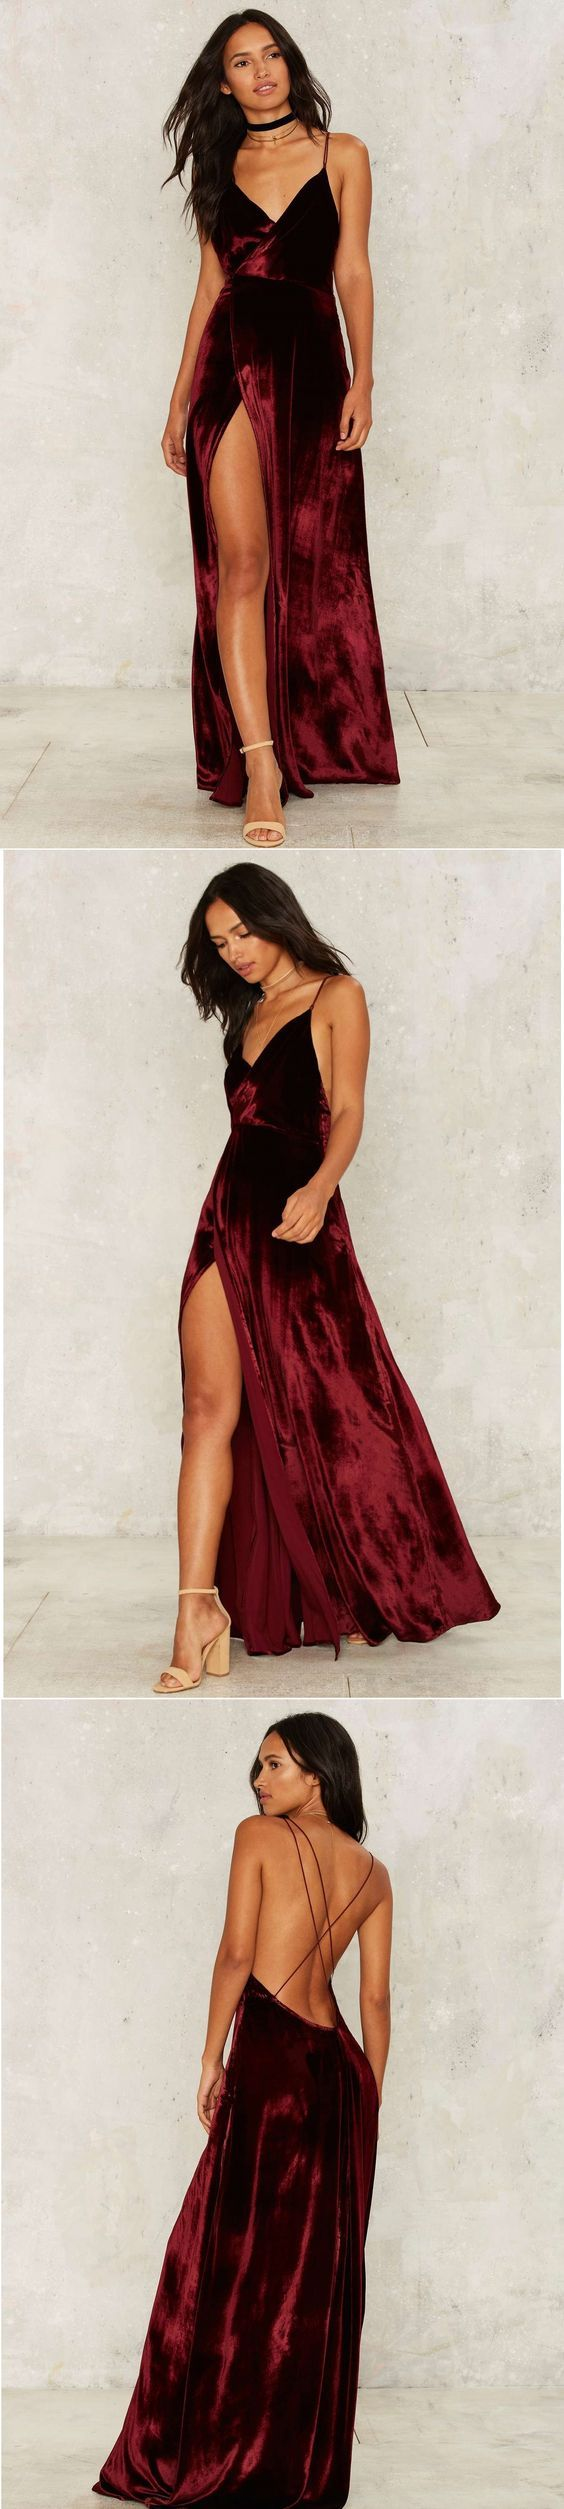 Modest Prom Dress,2017 New Prom Dress,Long Prom Dresses,Burgundy Evening Dress,Sexy Spaghetti Straps Slit Evening Dress